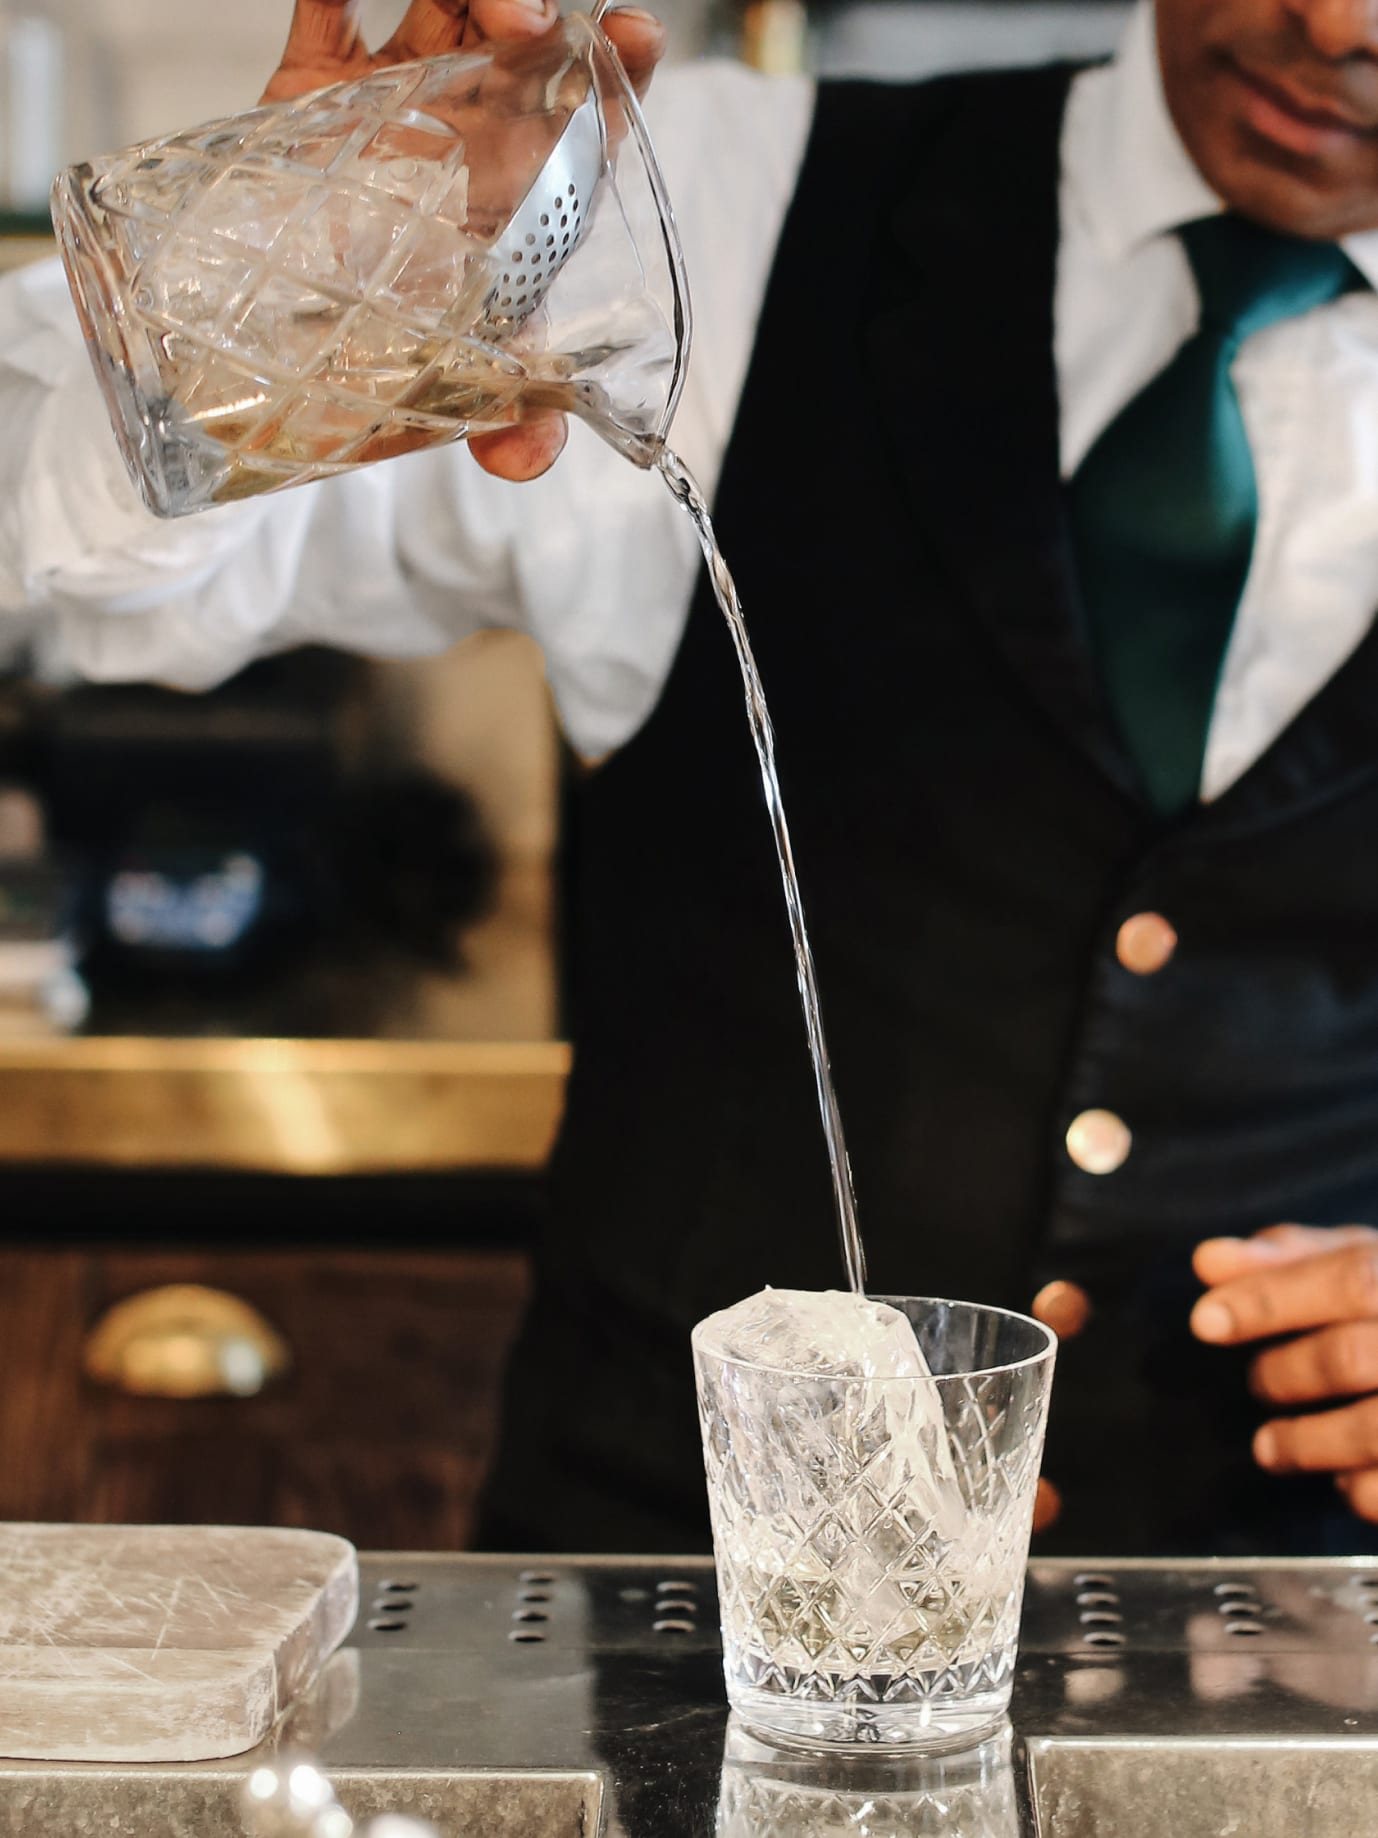 A barman pours liquid into a glass.